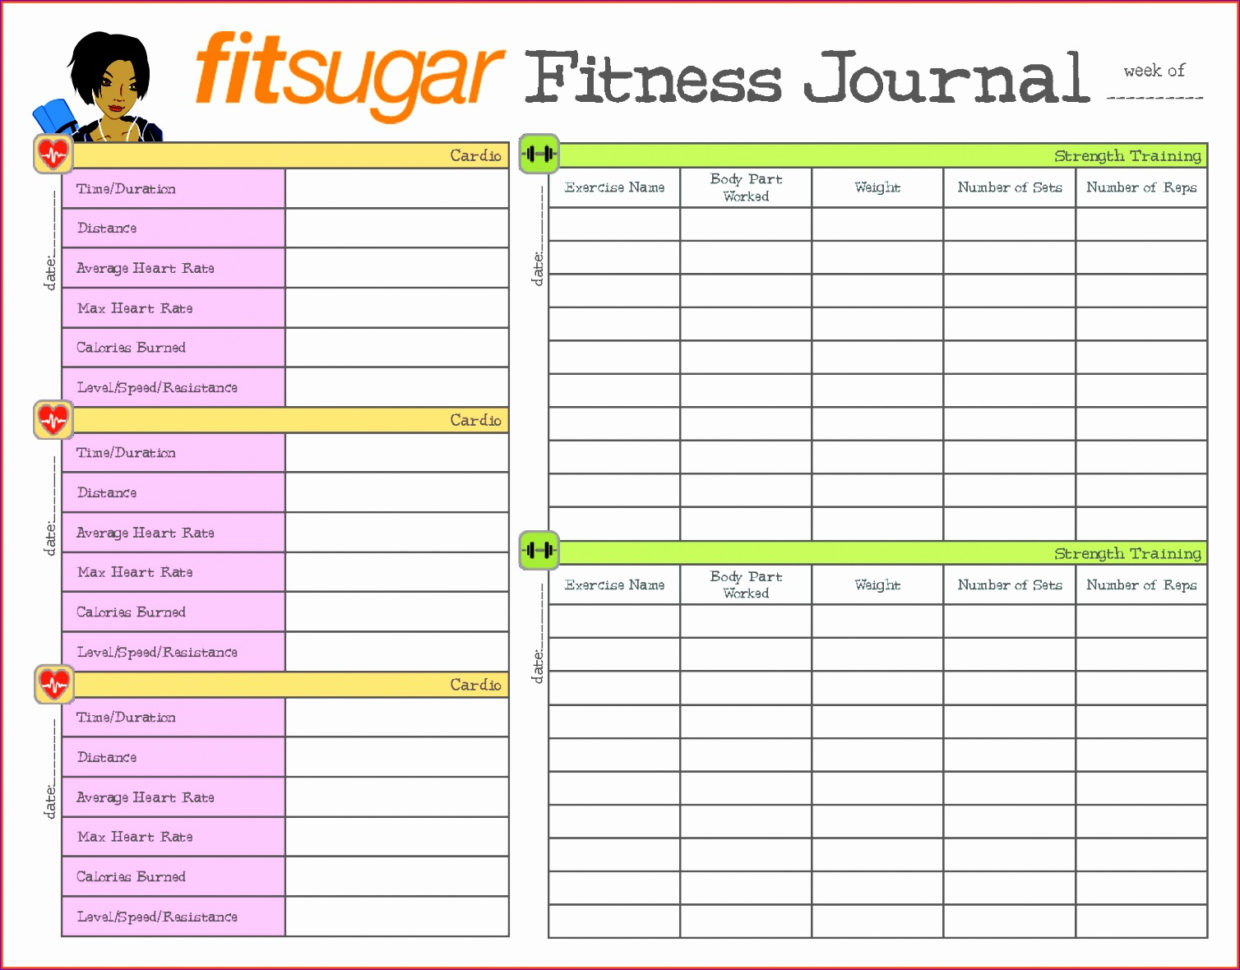 Diet Spreadsheet Pertaining To Excel Diet Spreadsheet New Weight Tracking Sheet Savesa Fres On Day